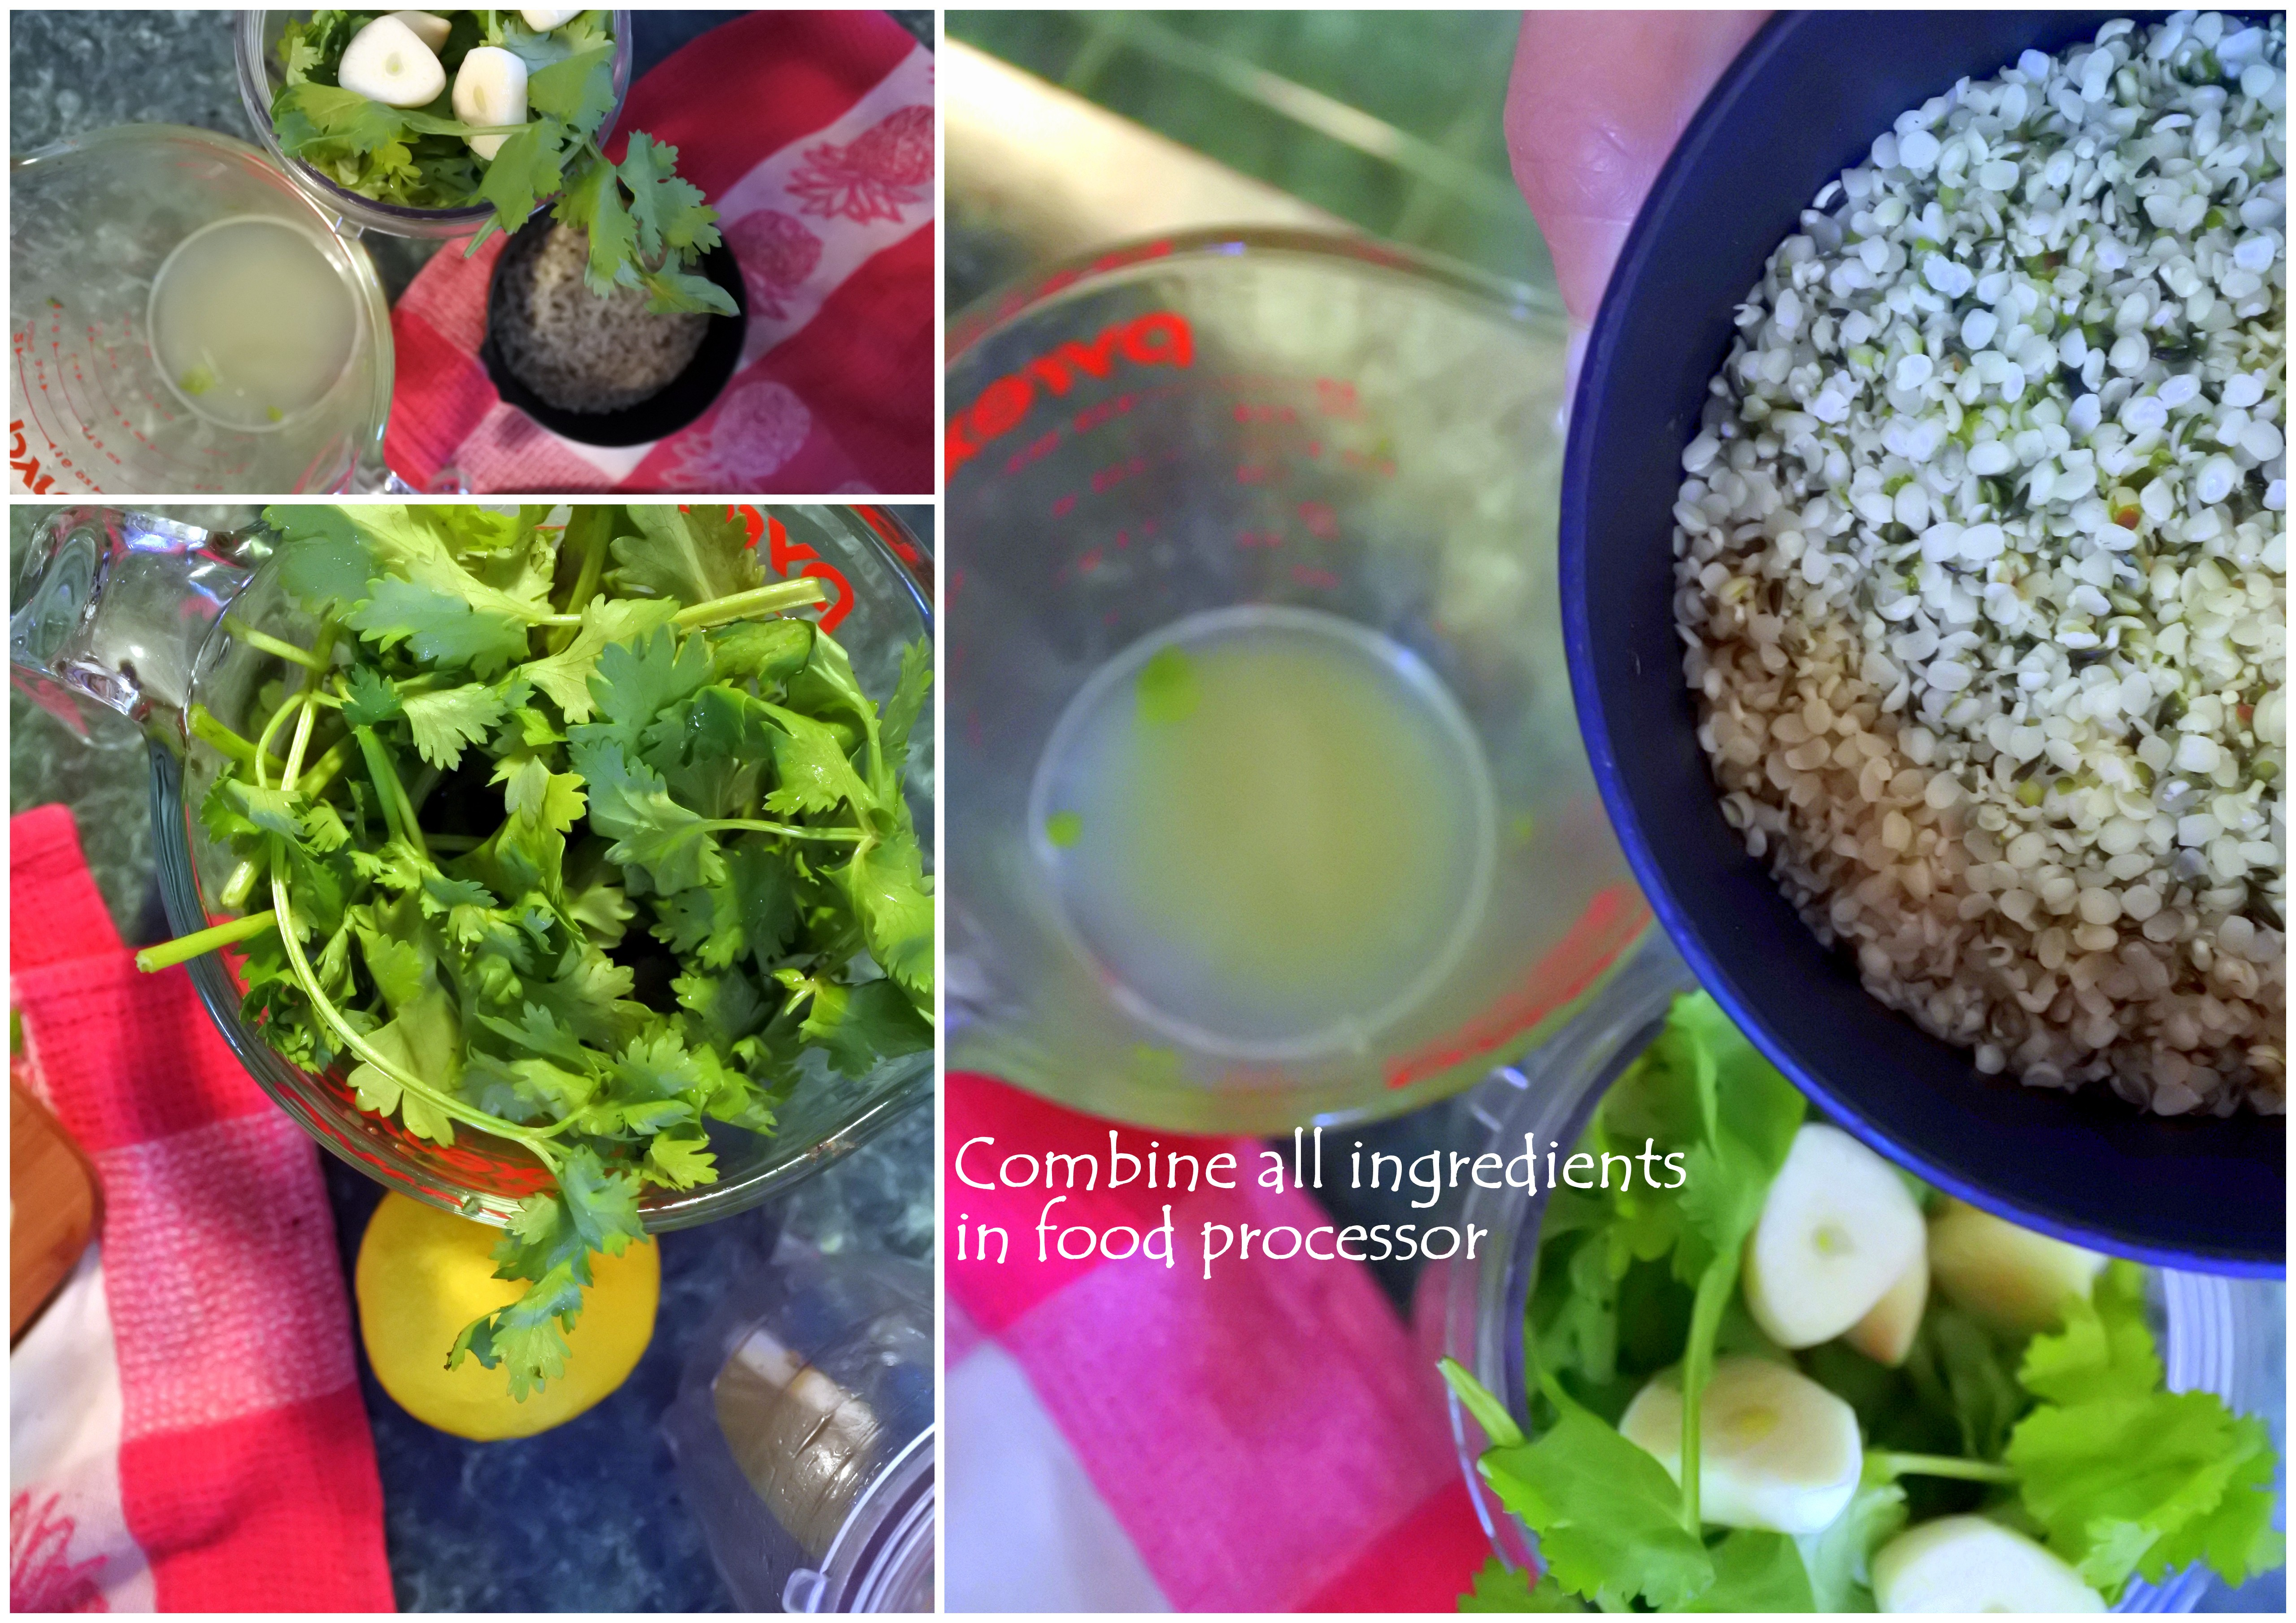 cilantro hemp greens garden cooking with kids teaching learning edible crafts